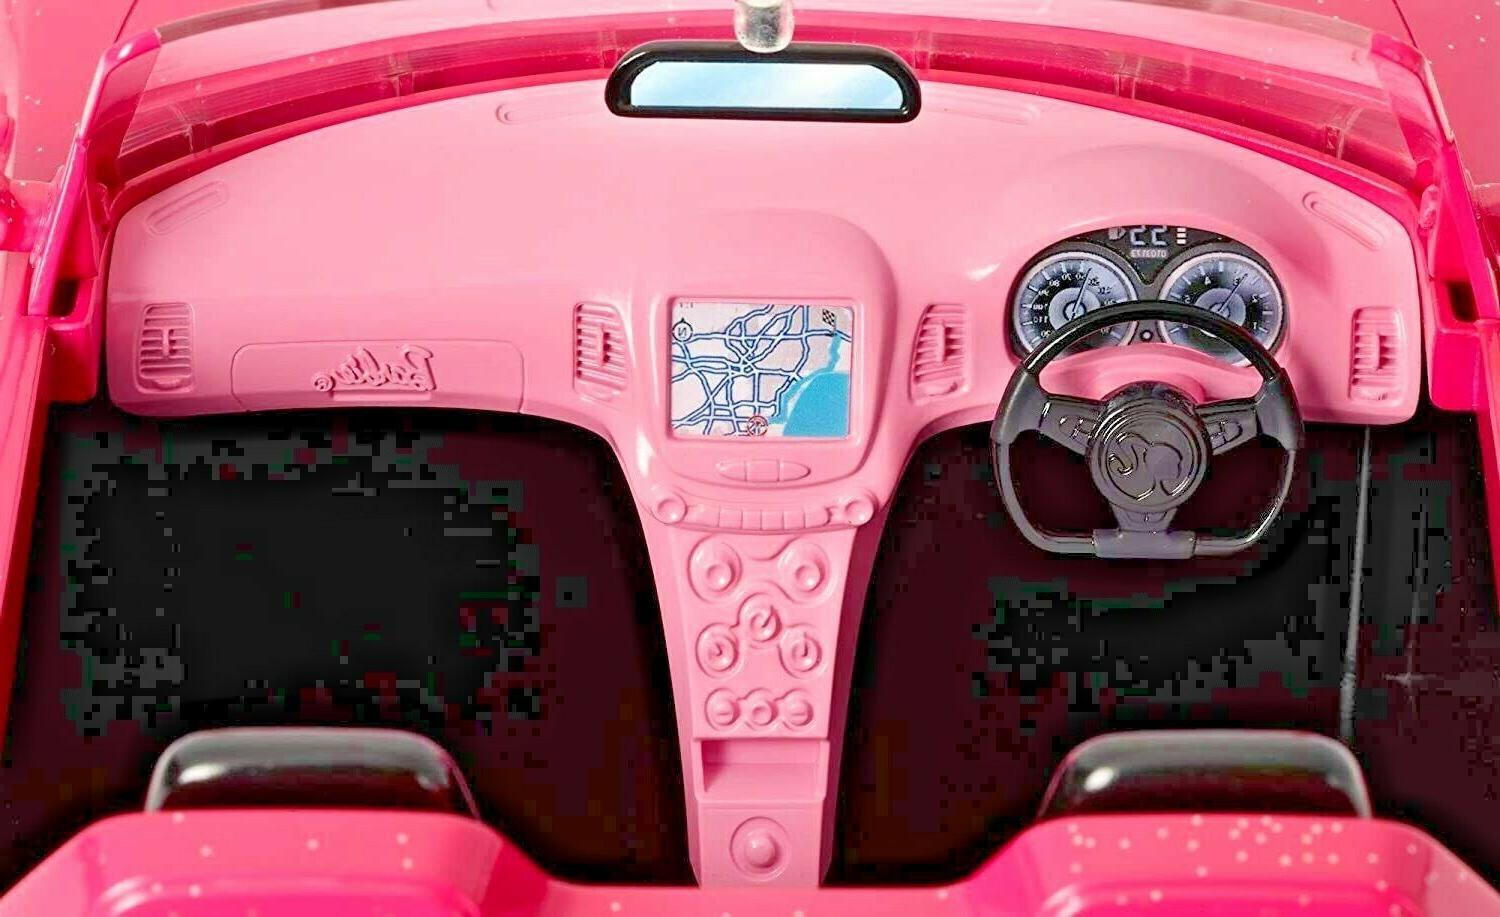 NEW Barbie Glam Convertible Doll Vehicle Two-Seater Pretend Play Car